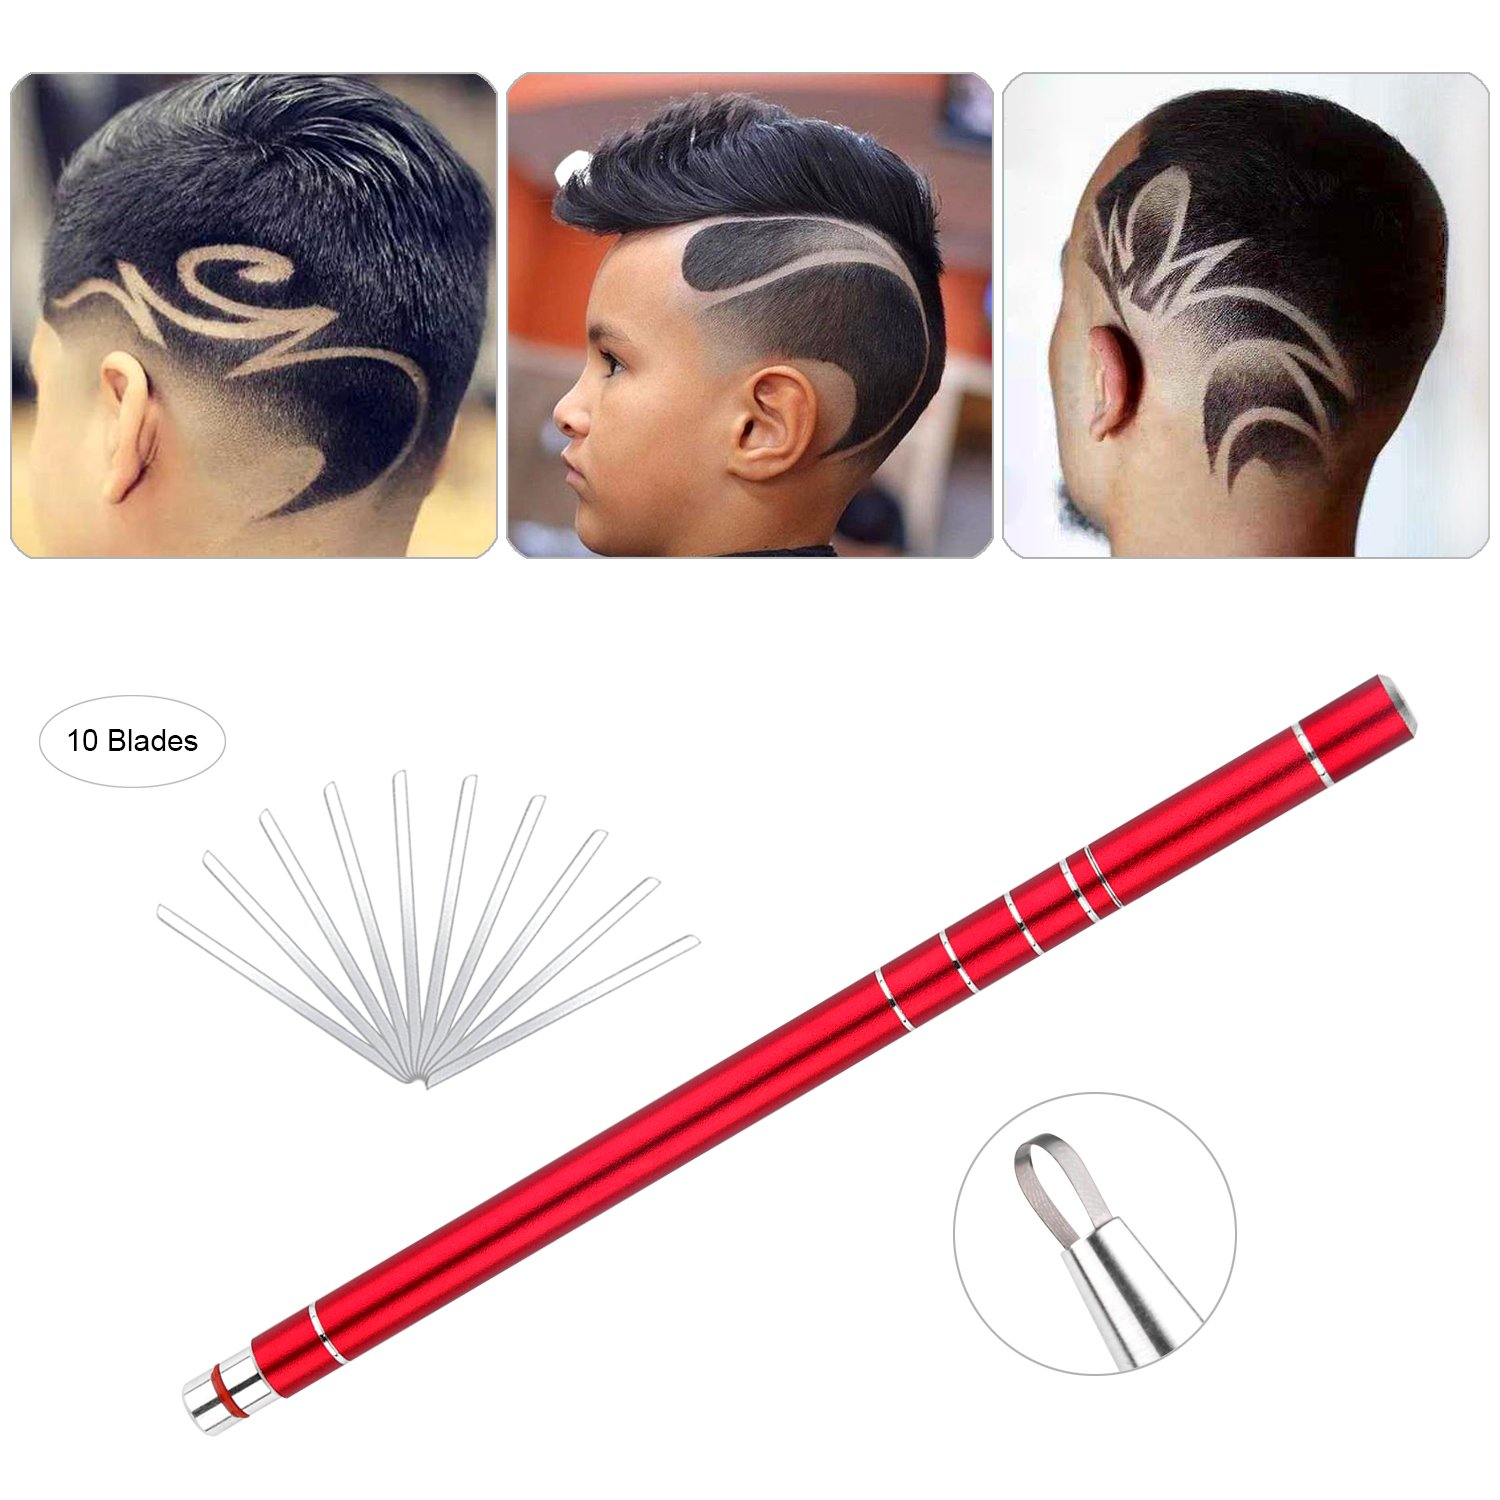 Hair Styling Stainless Steel Razor Pen with 10 Blades and 1 Tweezer Accessories Upgraded V3.0 Face Shaping Device Tools for Hair Design/Hair Tattoo Eyebrow Beard Womens,Mens and Children (Set of 12)-Red centtechi